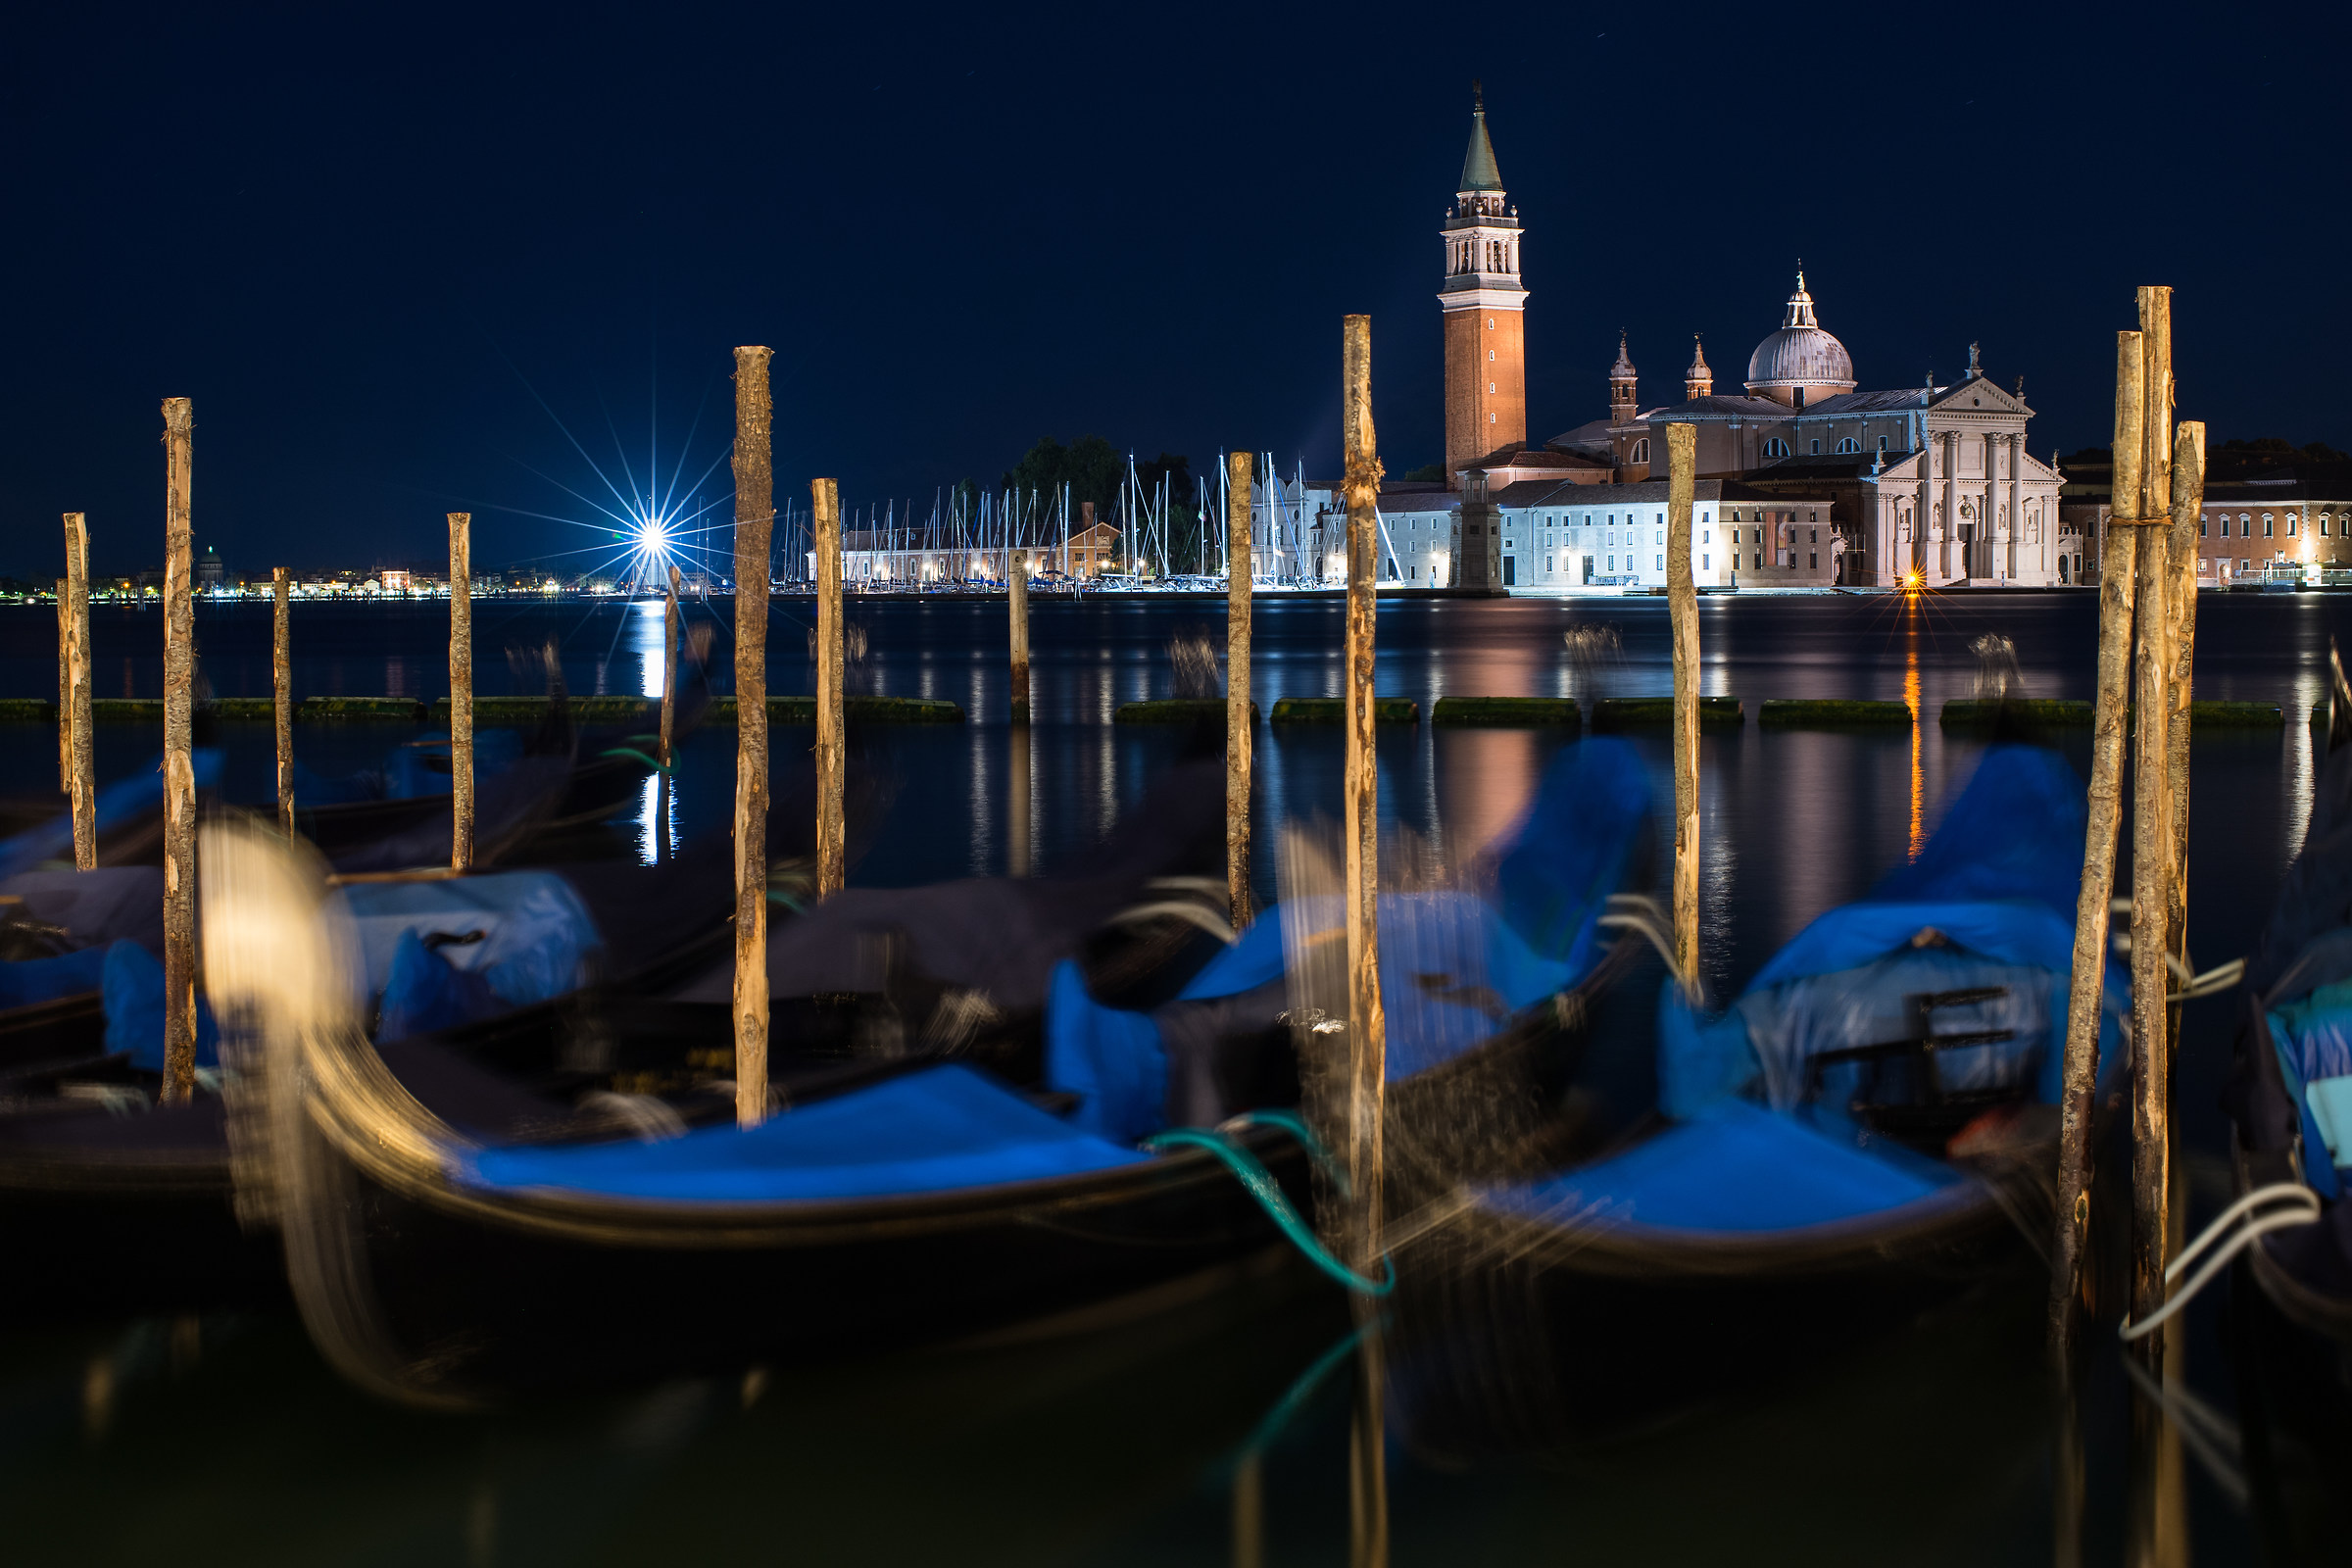 Venice at night...